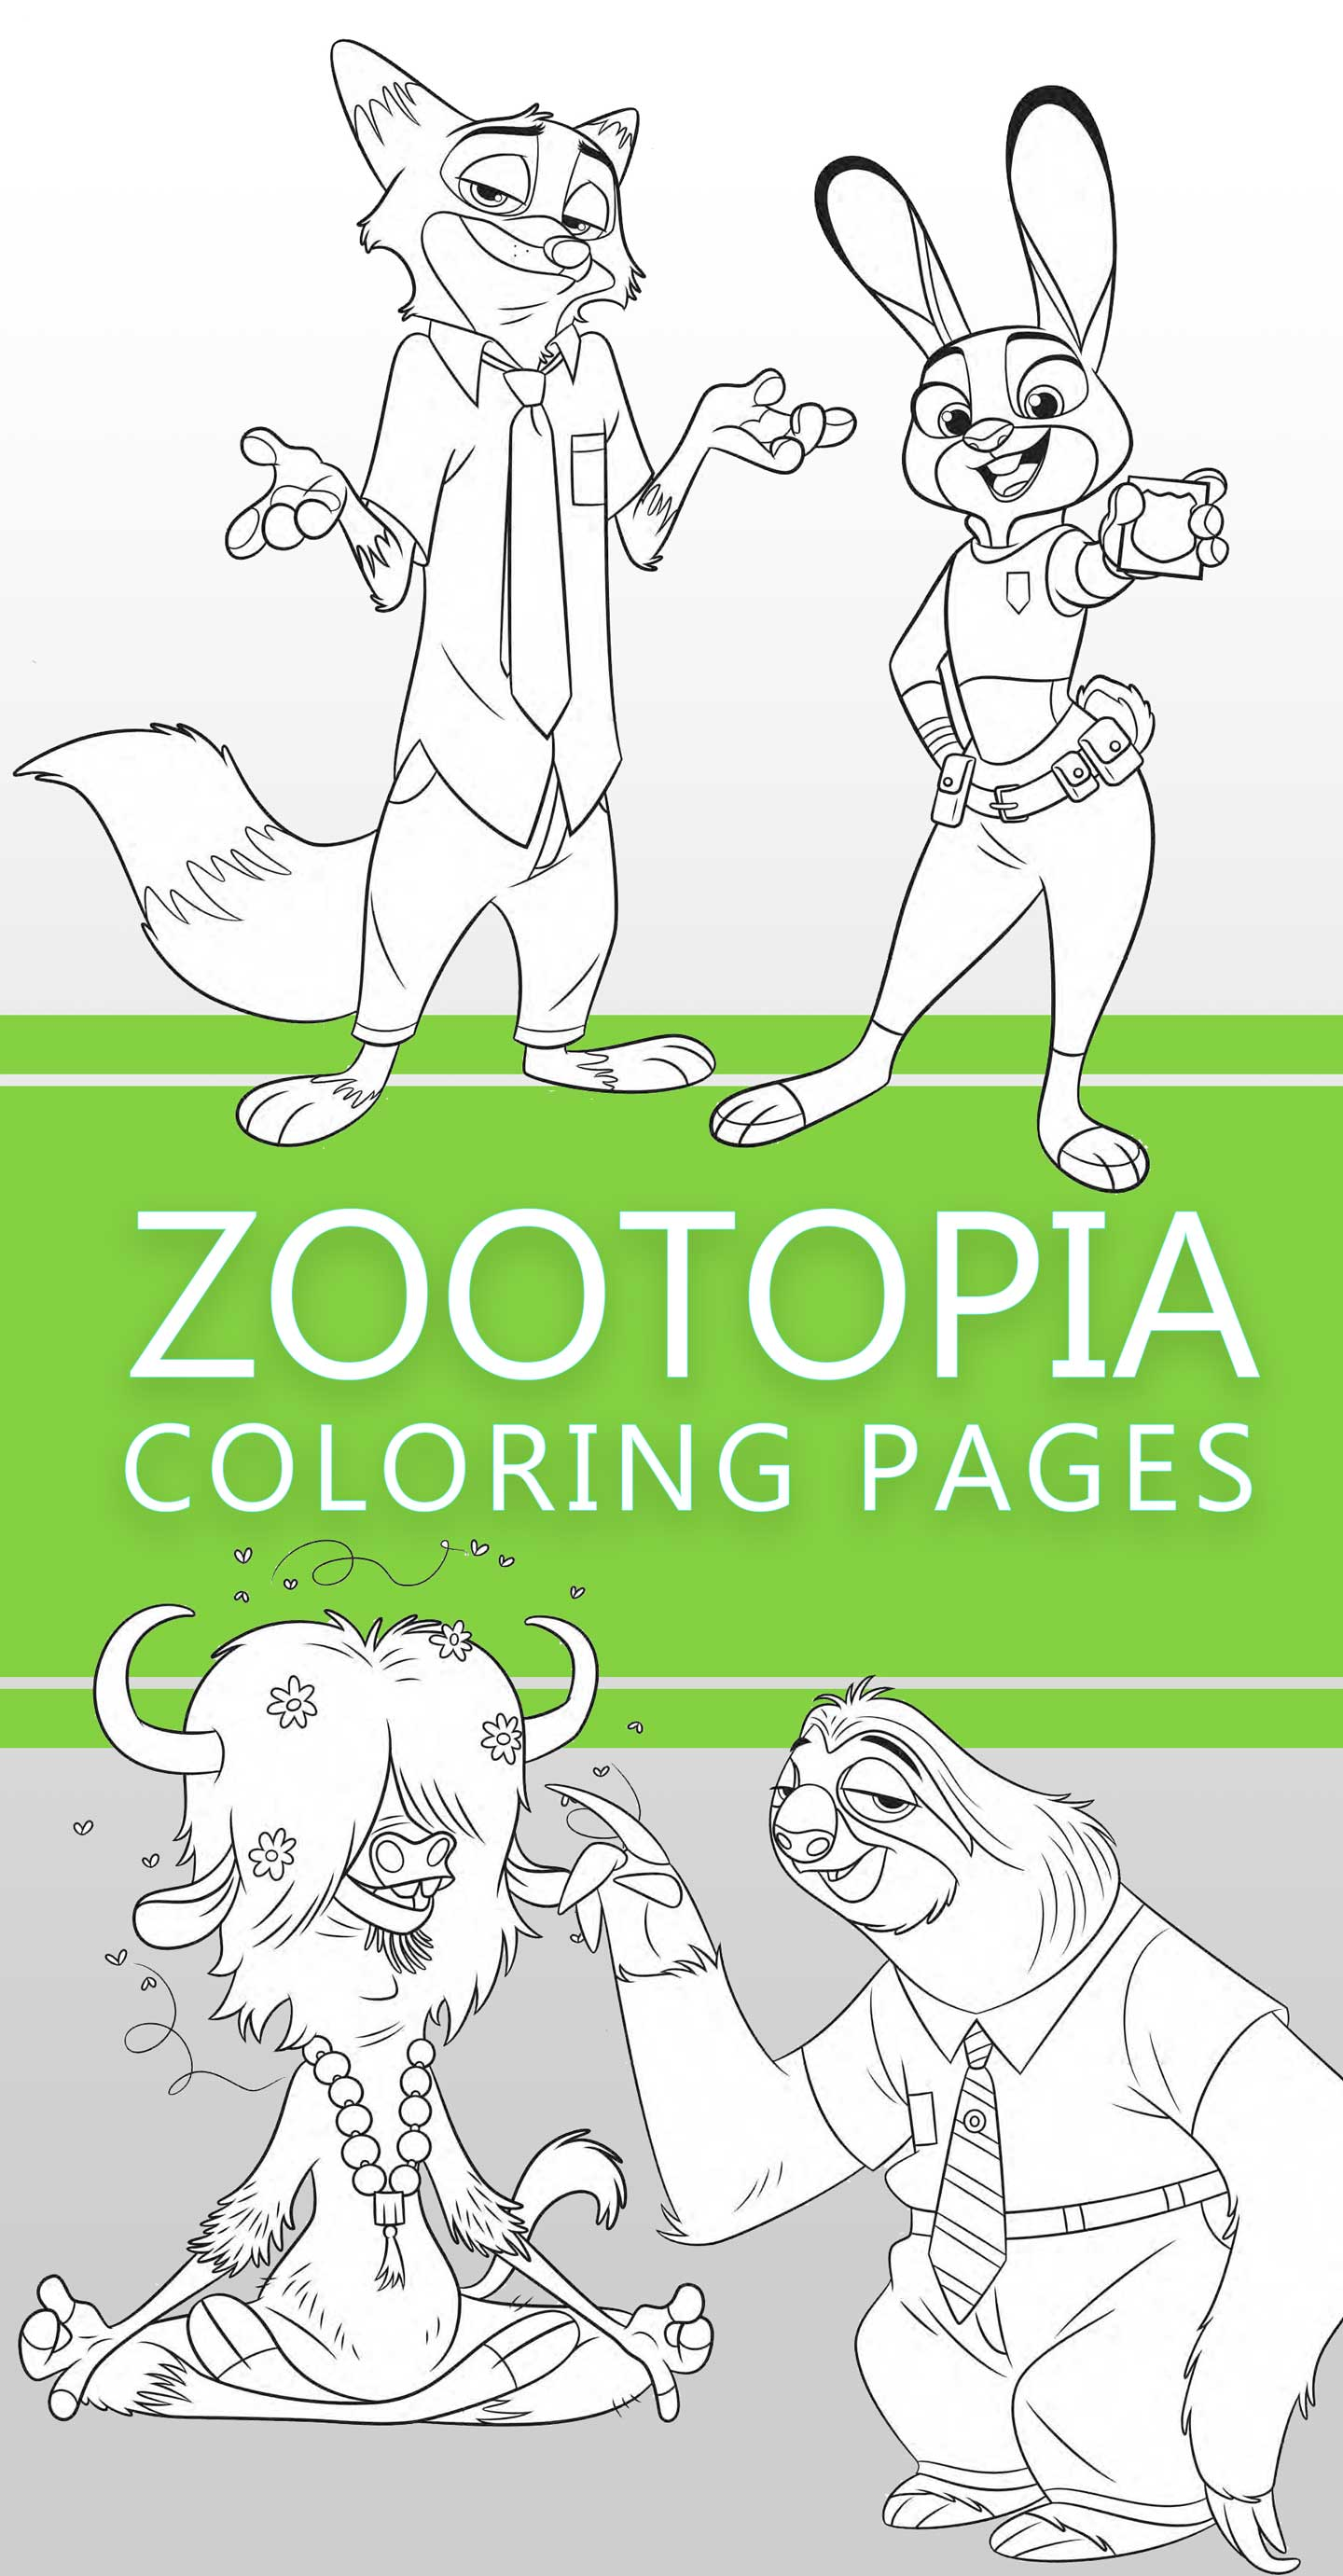 Zootopia coloring pages - Highlights Along the Way